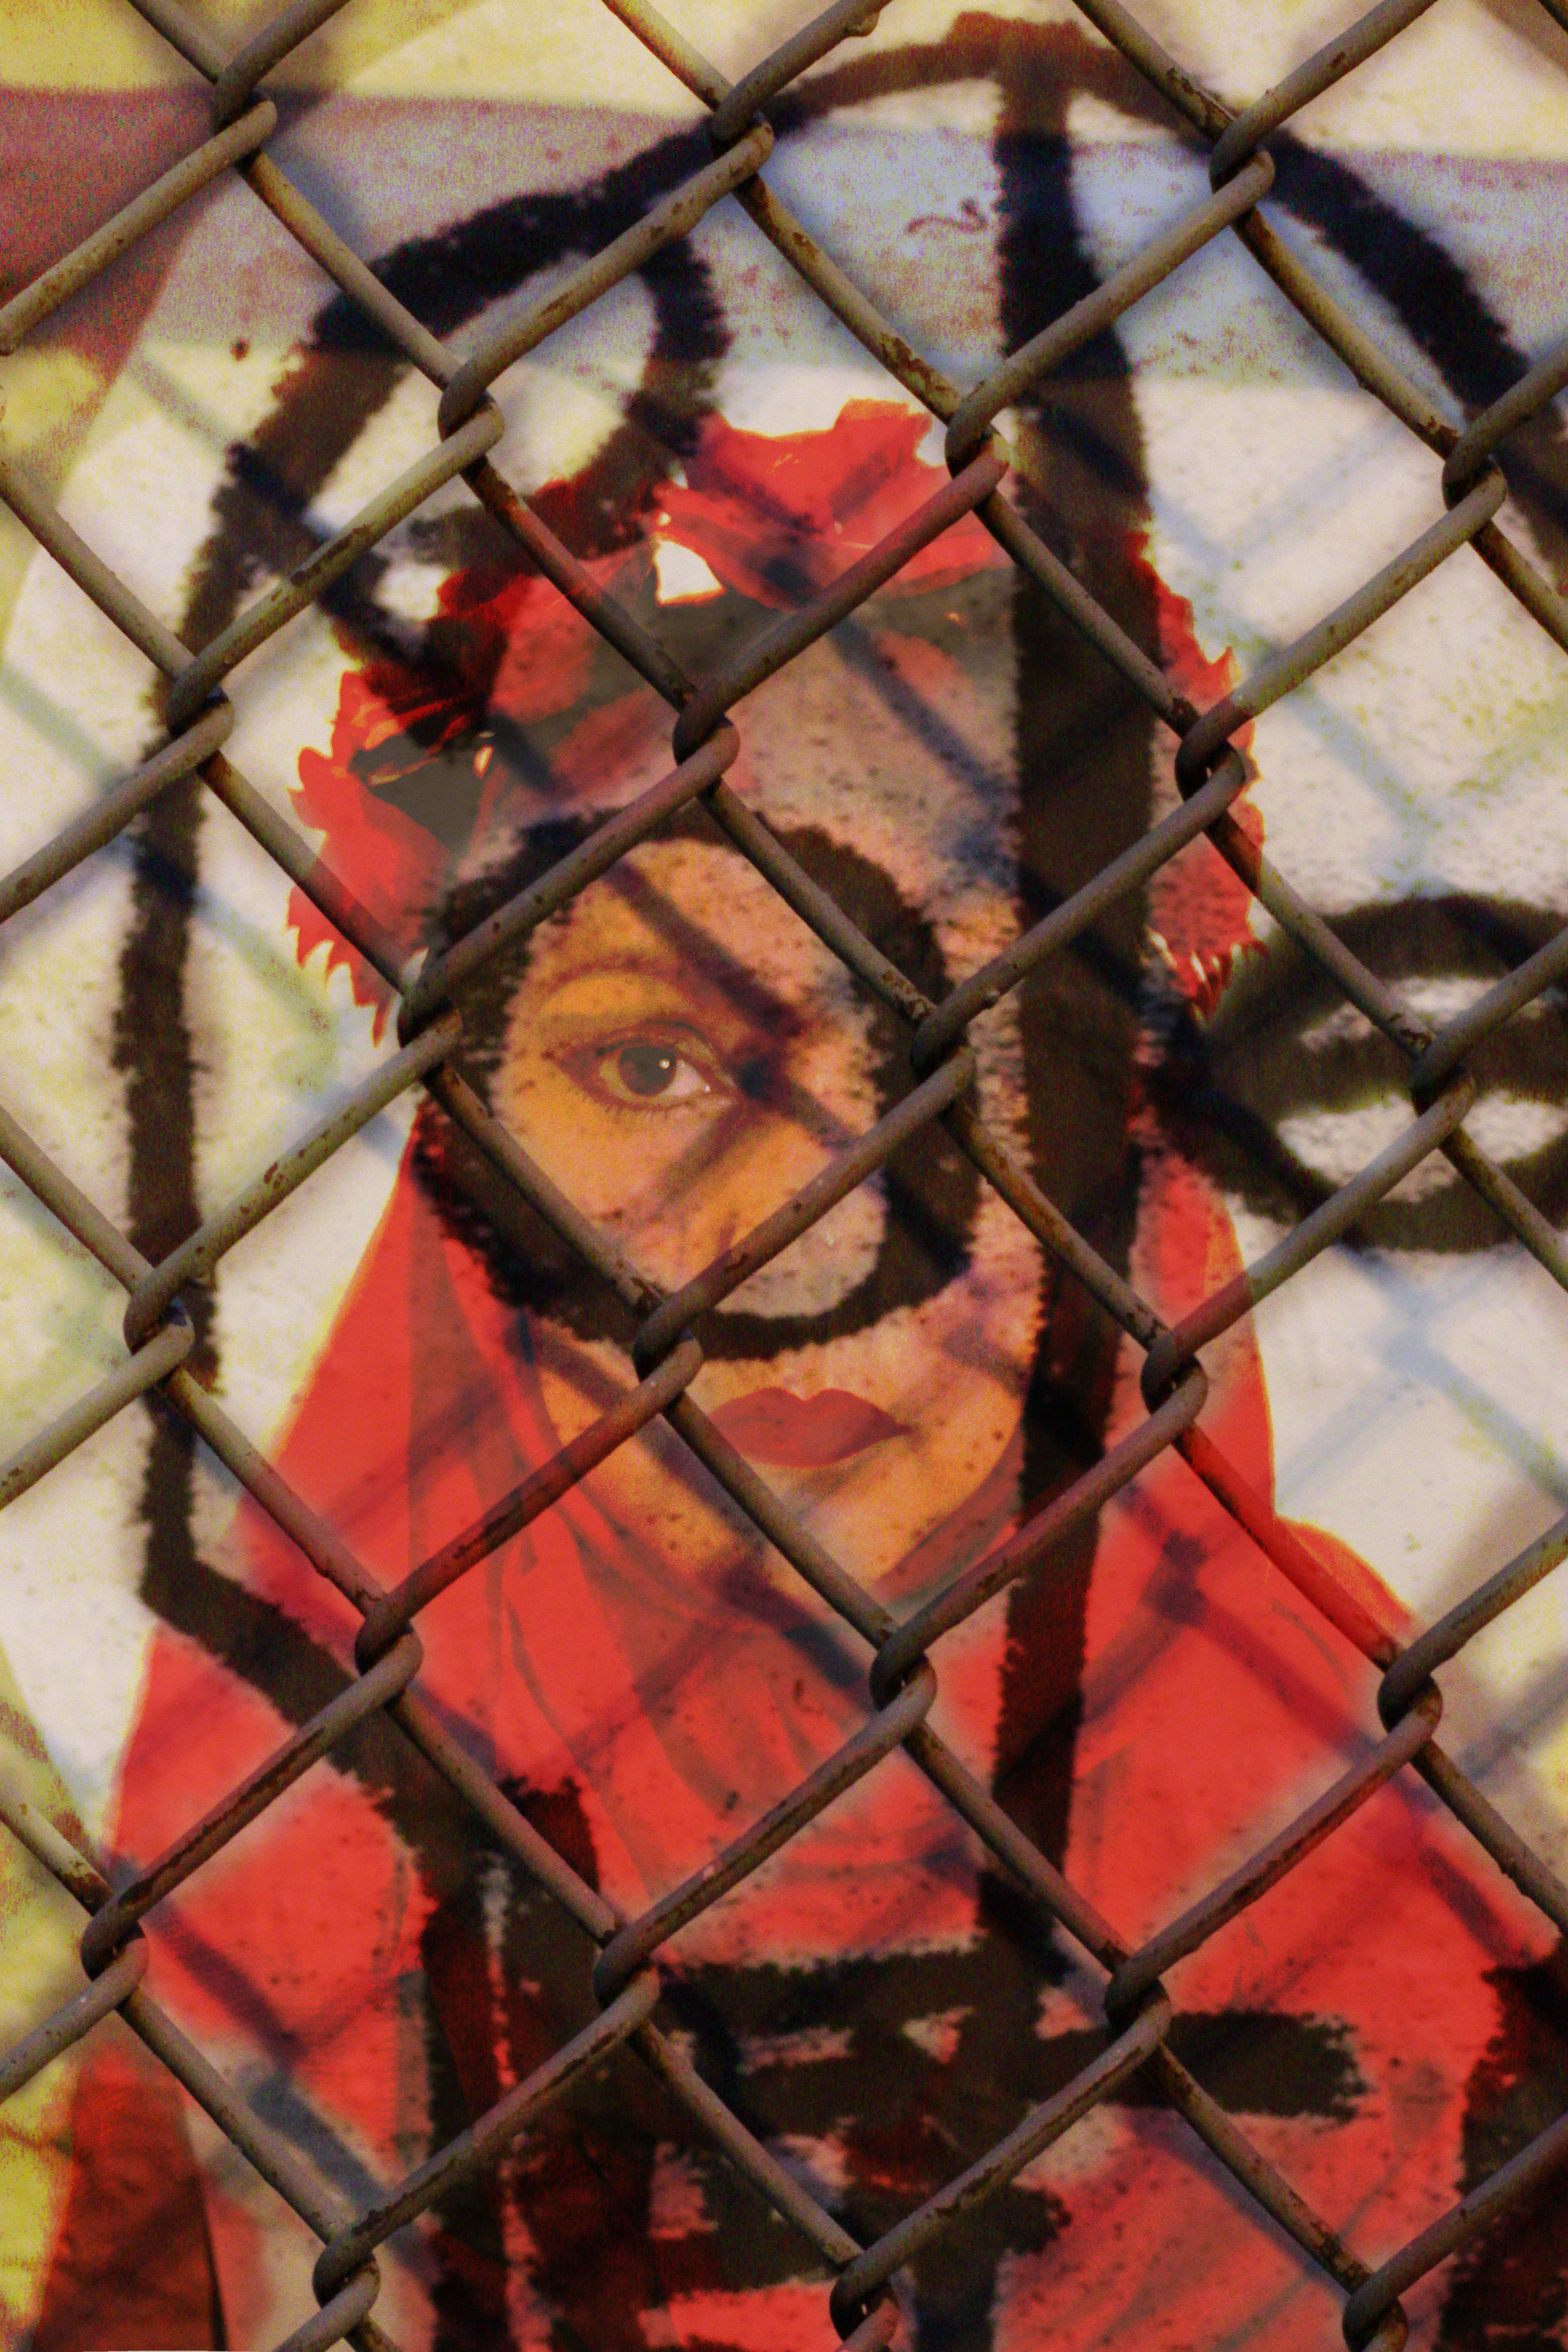 The Death of Art - A Self-Portrait depicting Frida Kahlo behind bars contemplating her love of art and her love of Islam.Which would she choose living in this modern World?MODEL | Self Scrutiny